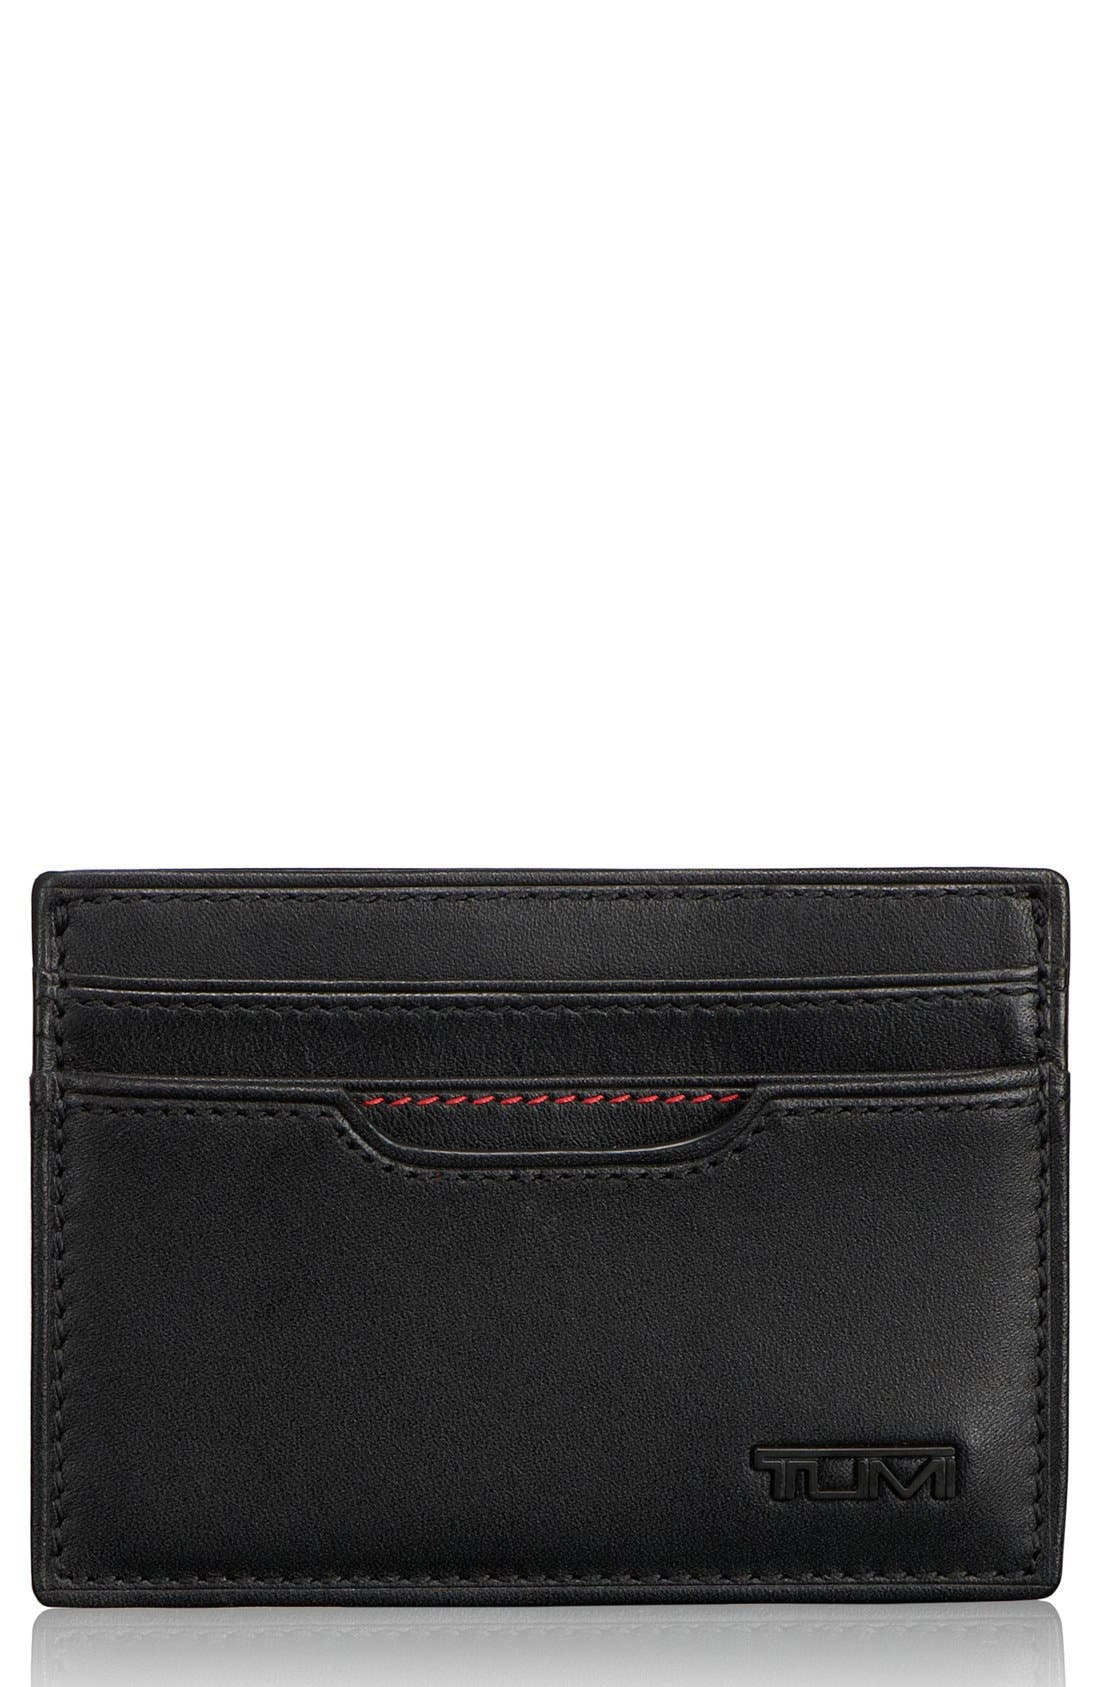 Alternate Image 1 Selected - Tumi 'Delta - ID Lock™' Shielded Money Clip Card Case